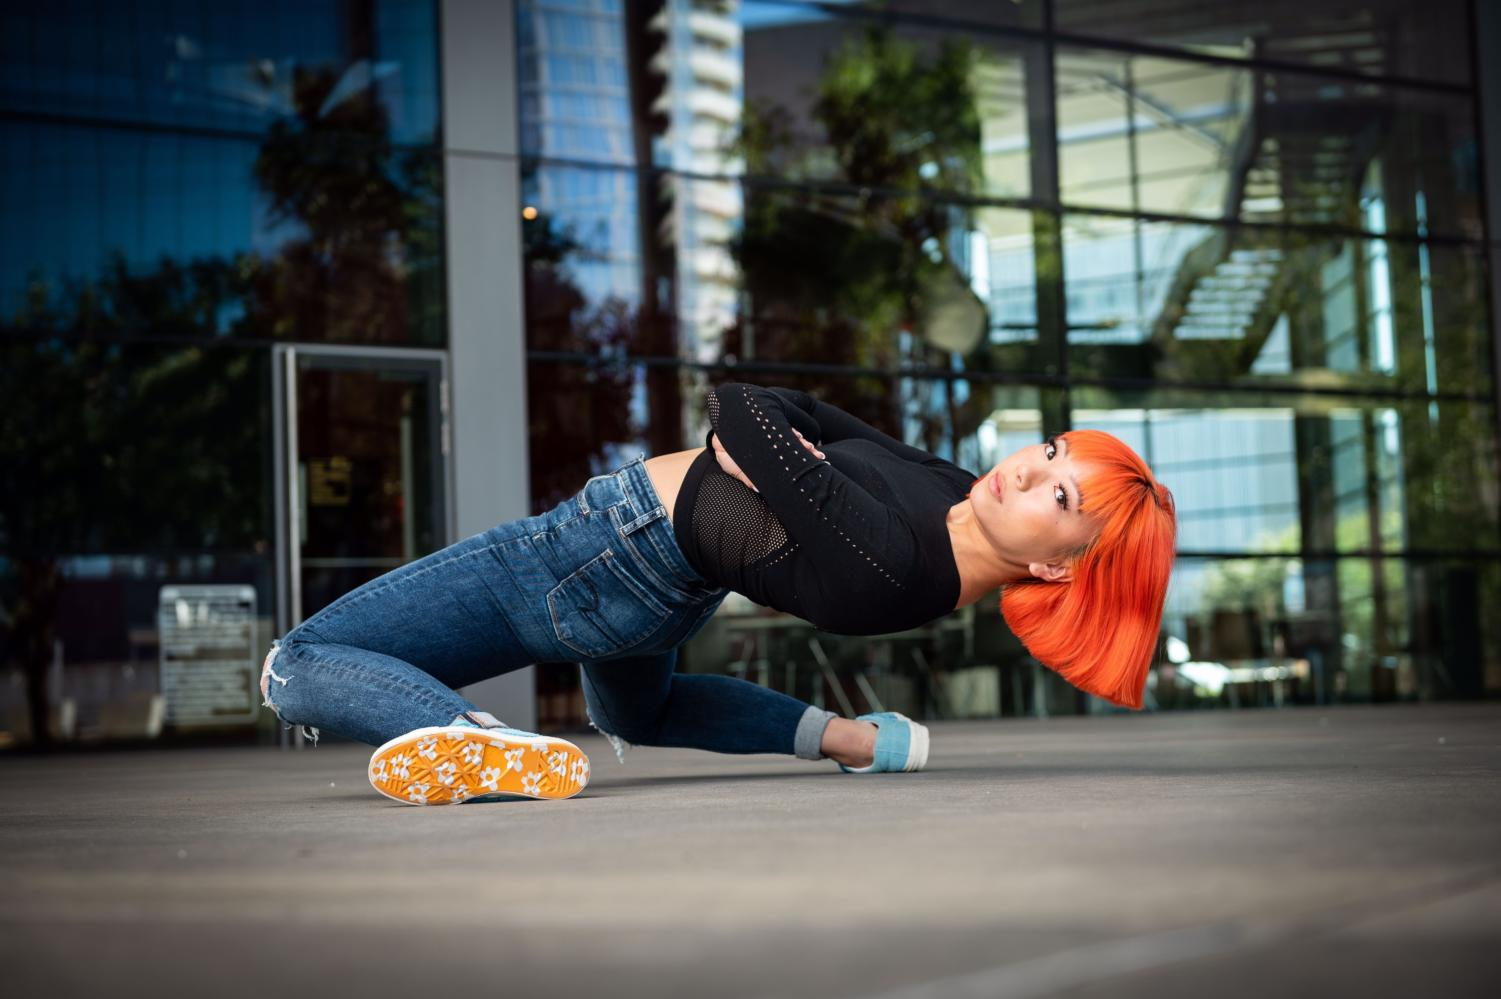 Senior Madison Lee poses for a hip hop photoshoot. Lee has been part of The Officials dance crew for two years and does hip hop performances and competitions.